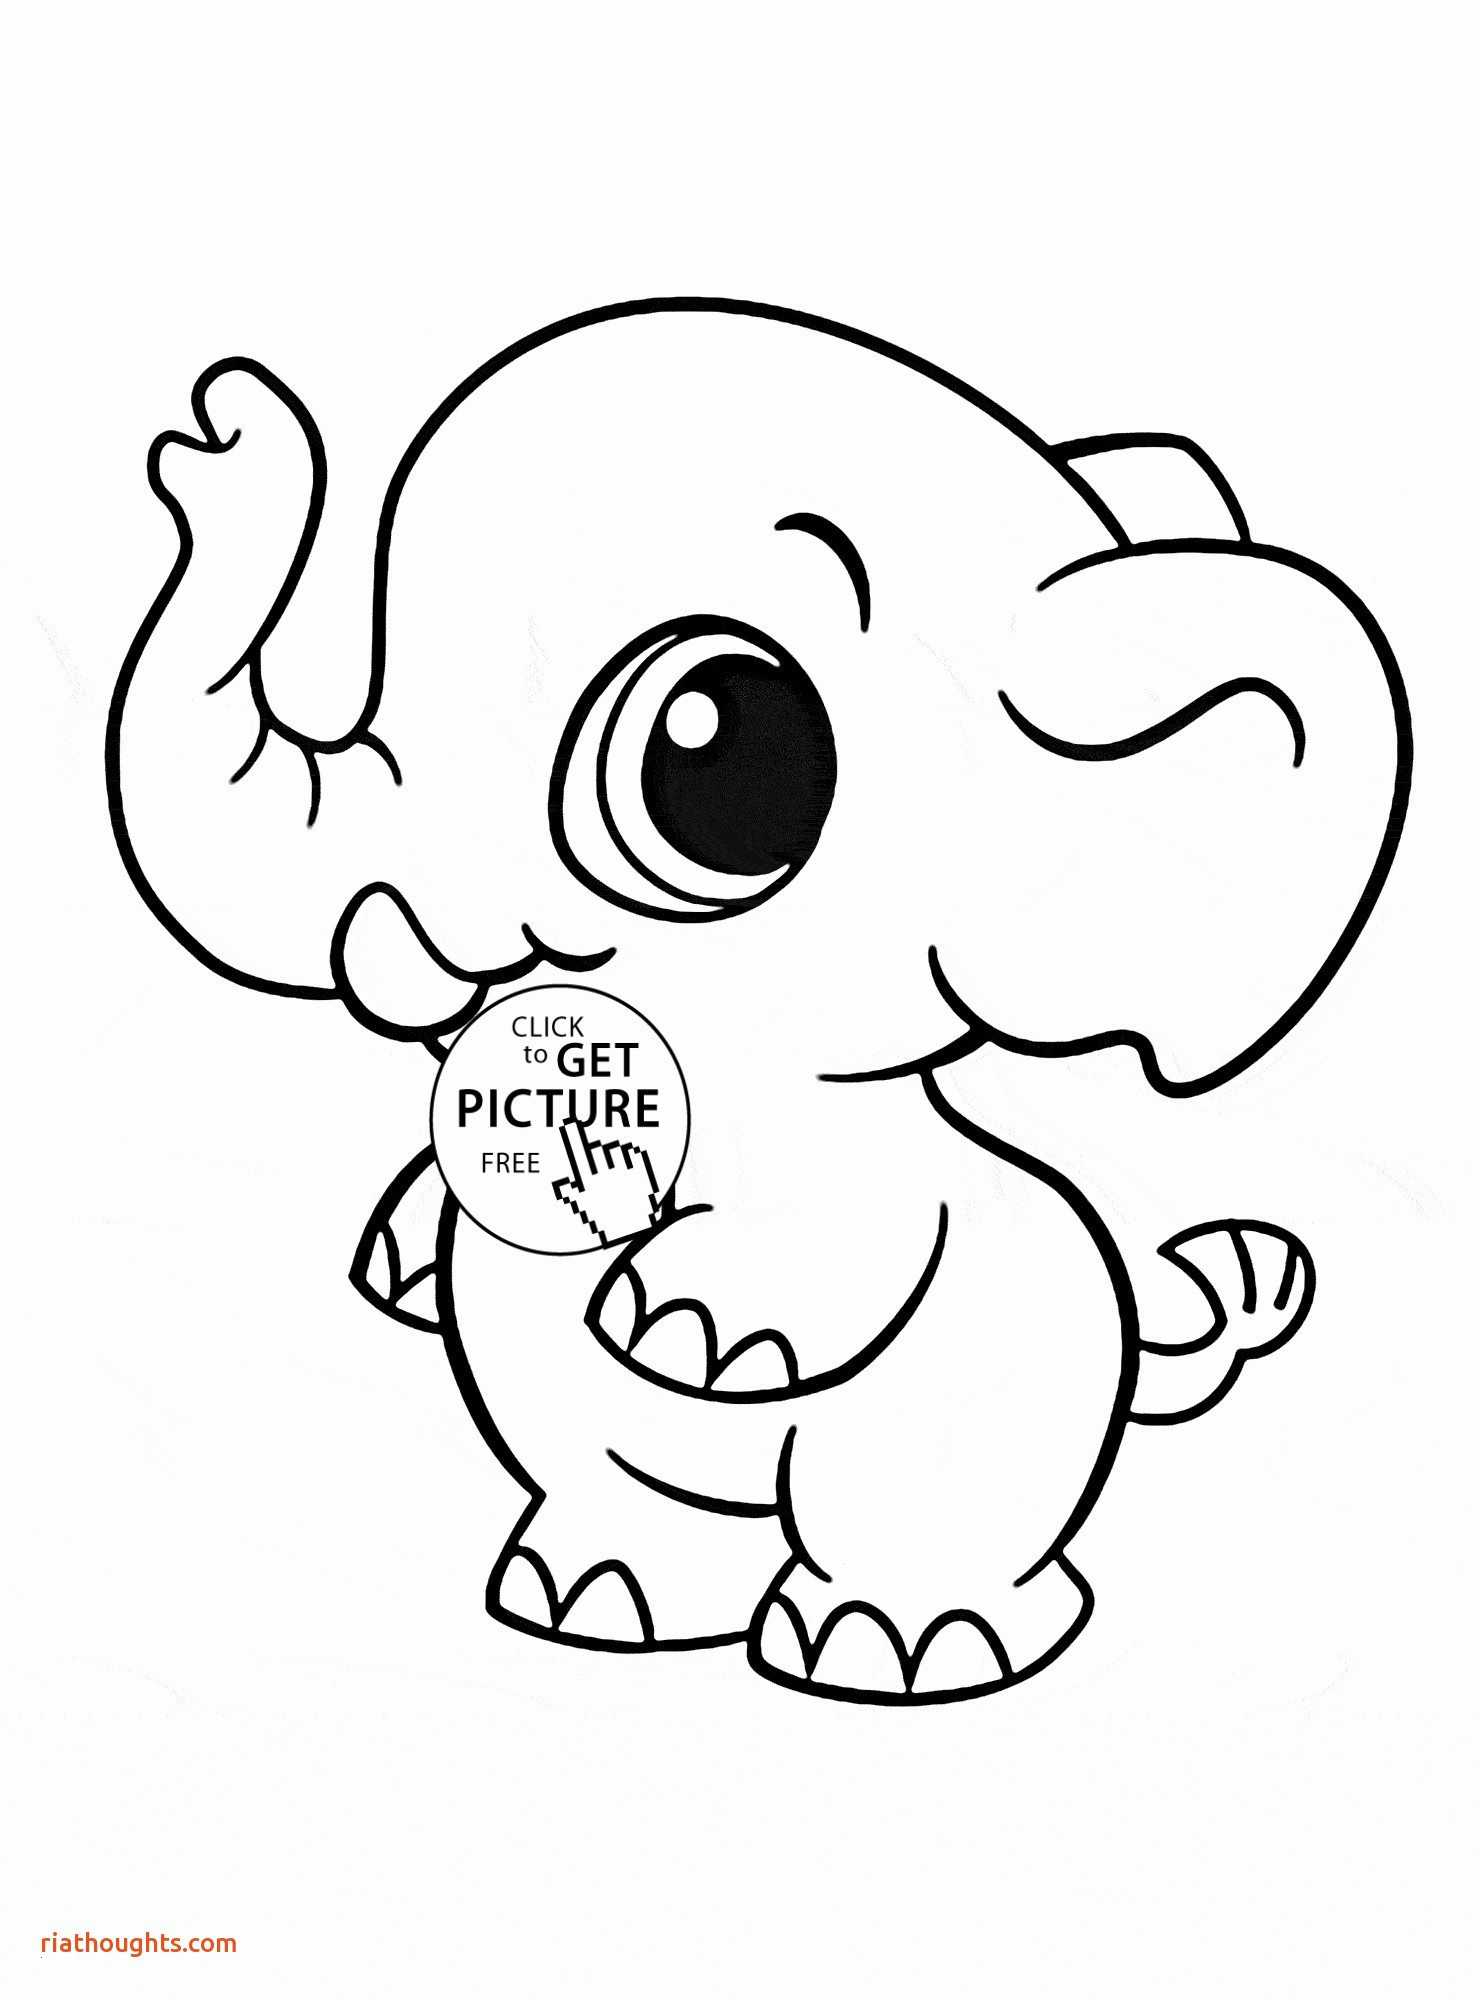 29 Zoo Animals Printable Coloring Pages Download Coloring Sheets